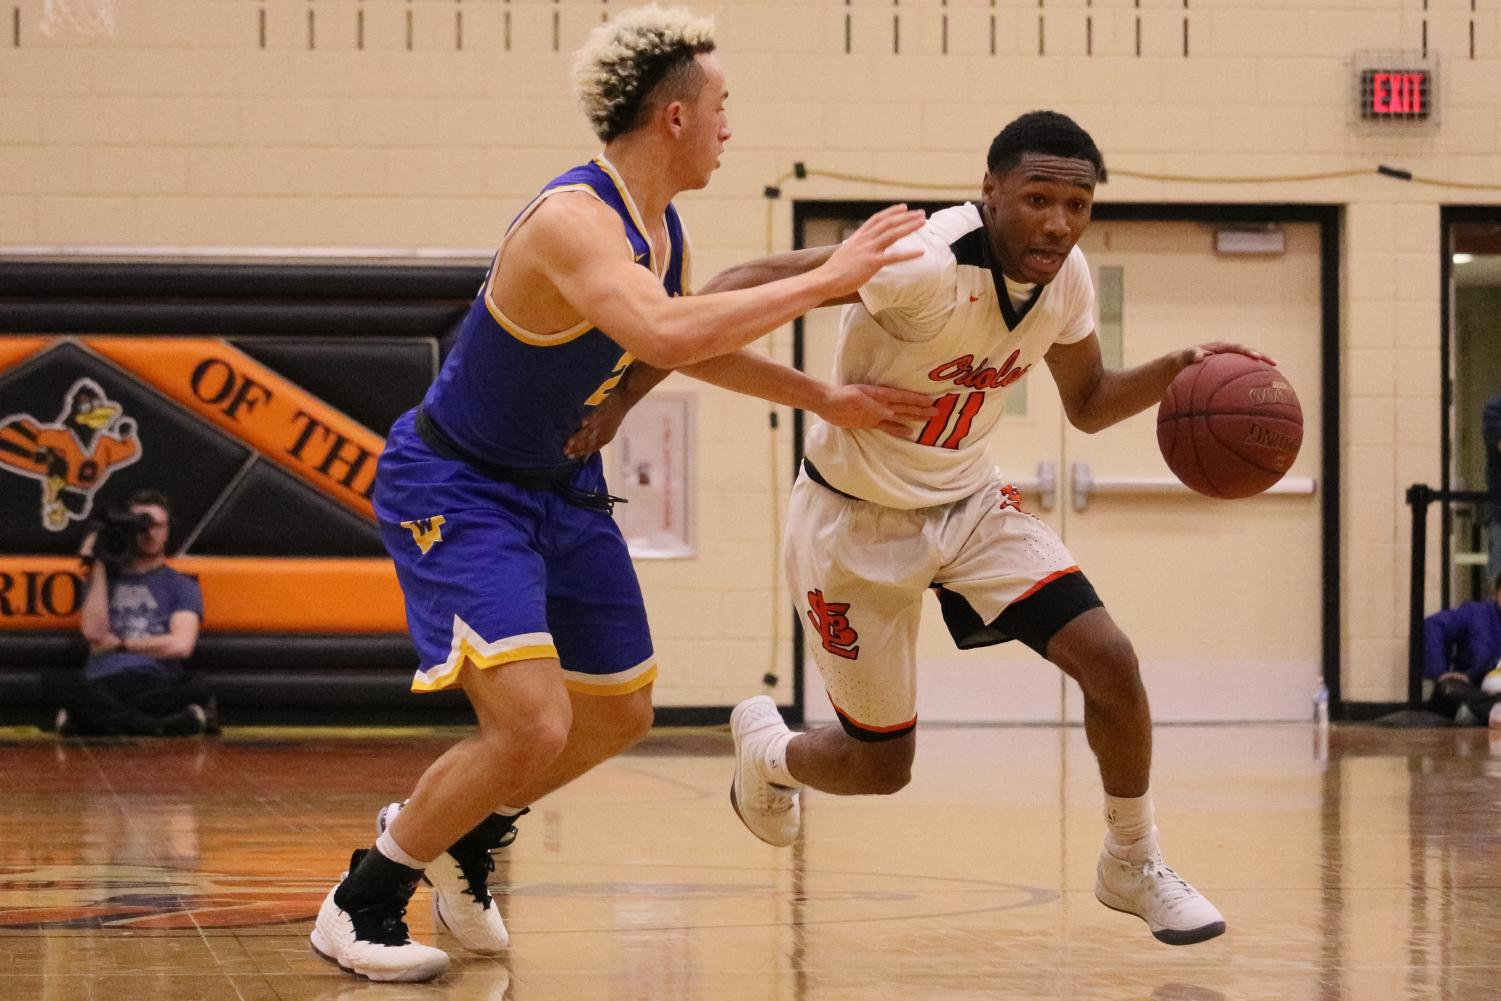 Senior Cire Mayfield drives to the basket against Wayzata defender Kody Williams. The Orioles were defeated by the Trojans 66-59 Mar. 9.